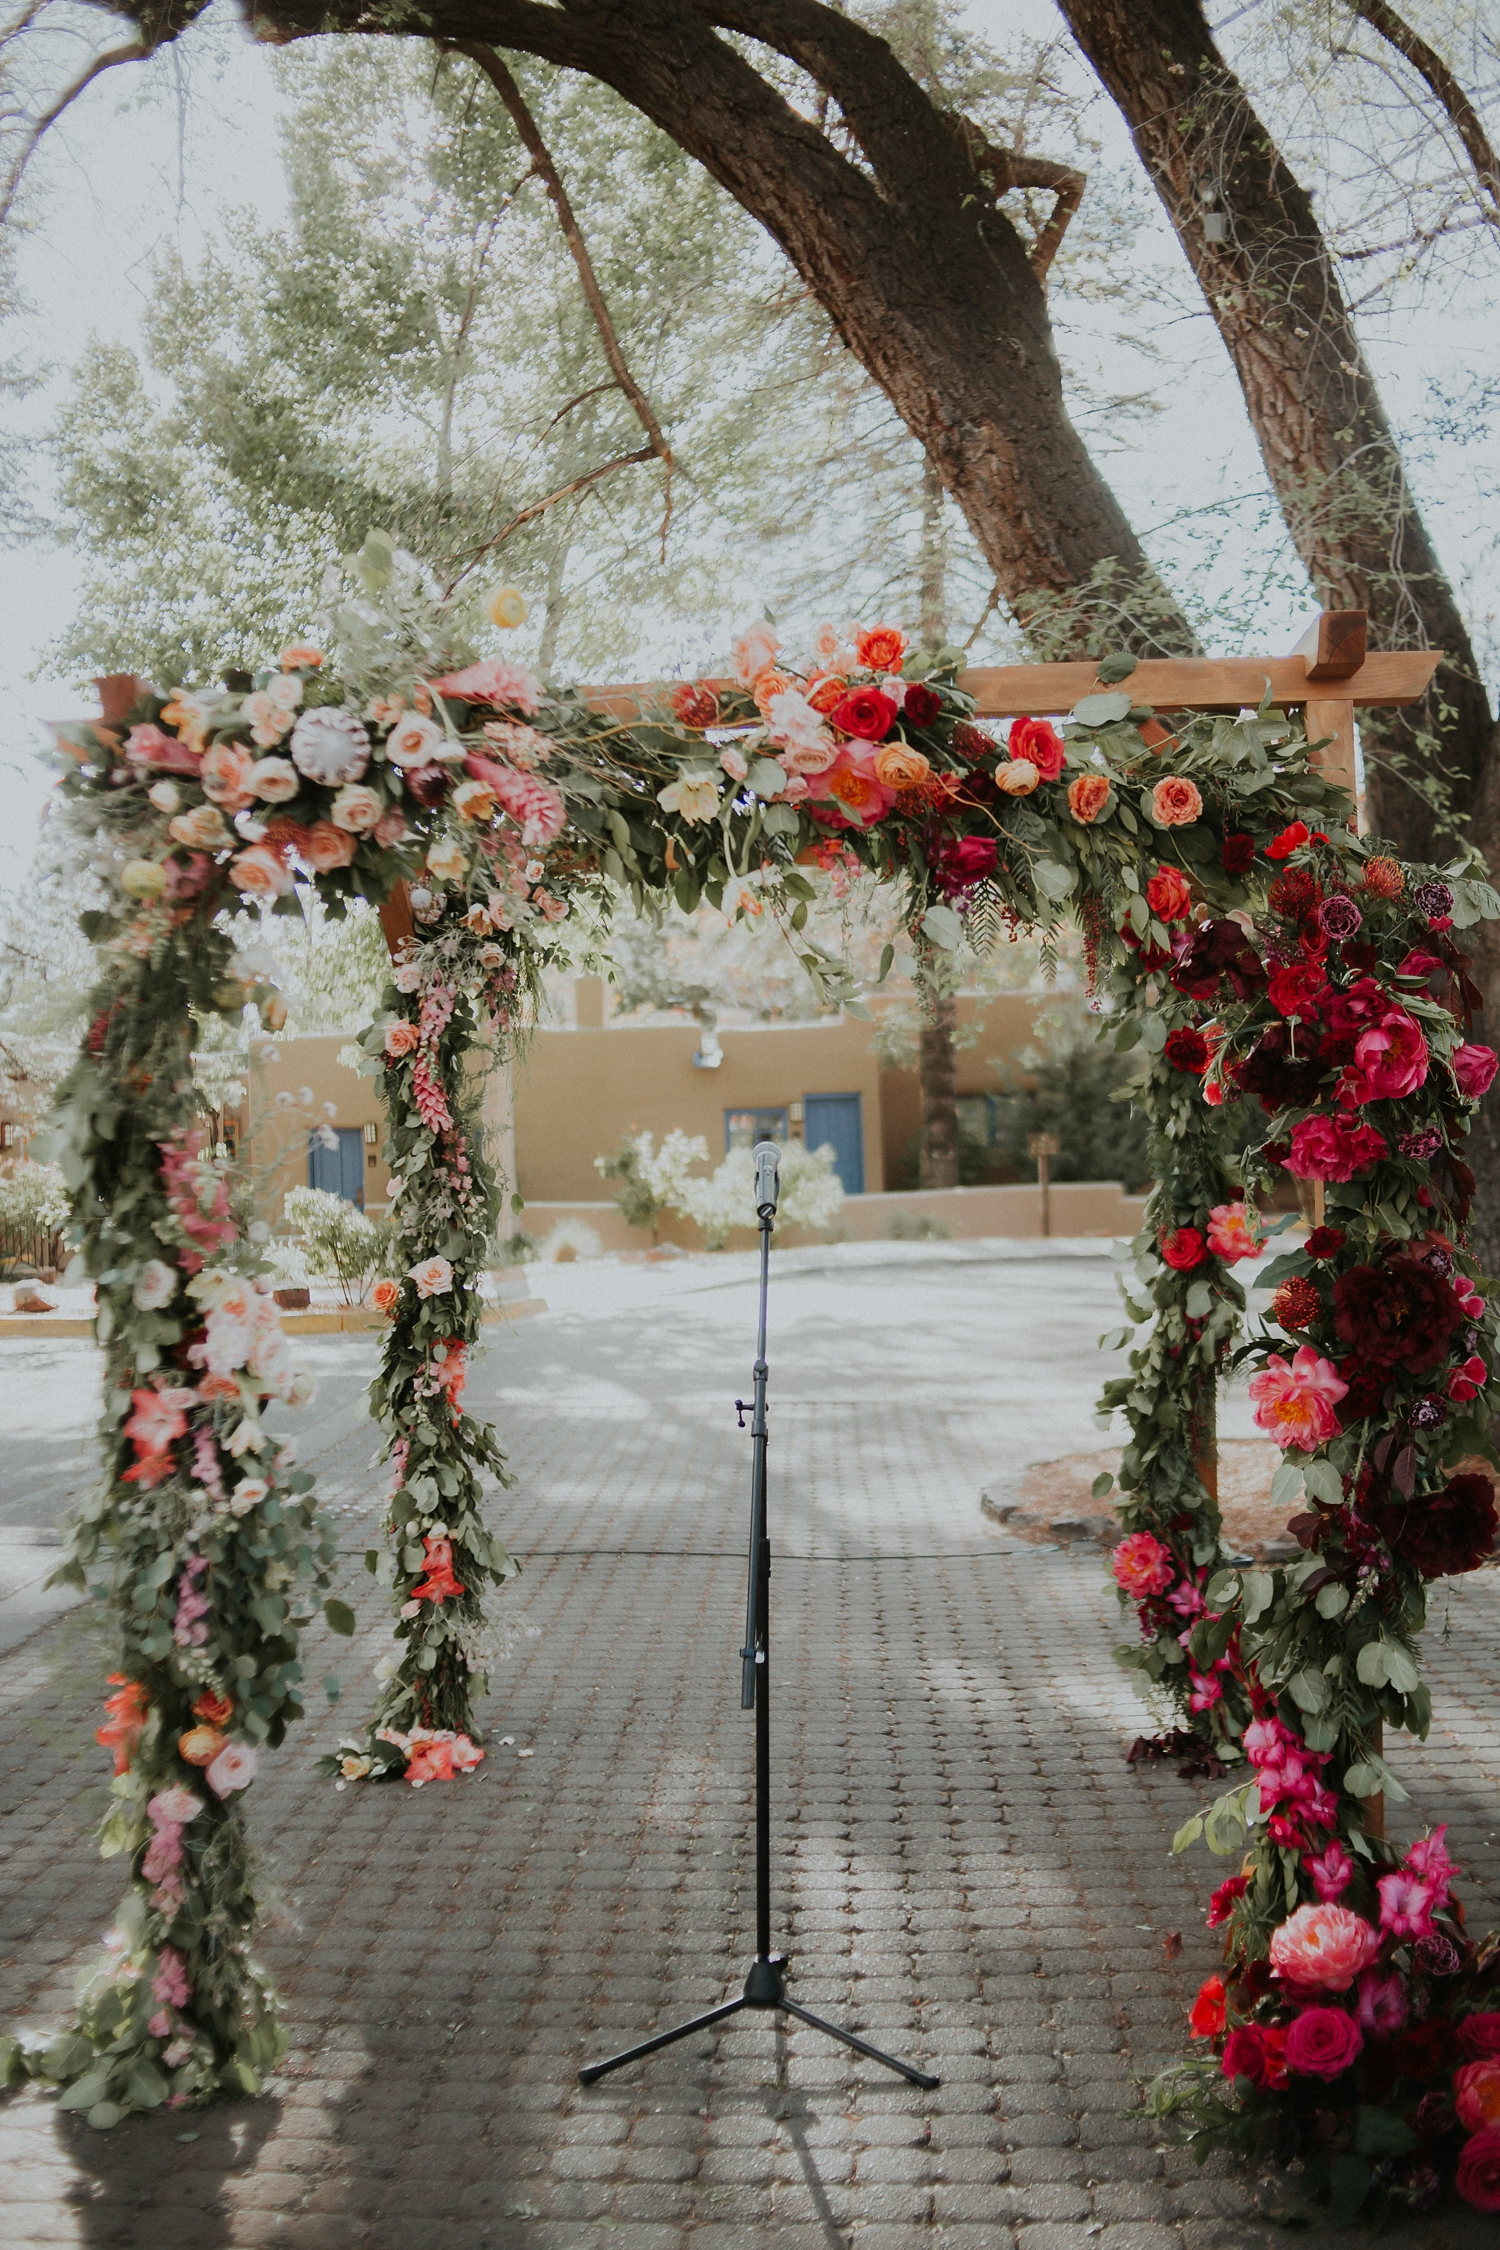 Alicia+lucia+photography+-+albuquerque+wedding+photographer+-+santa+fe+wedding+photography+-+new+mexico+wedding+photographer+-+wedding+flowers+-+summer+wedding+flowers_0009.jpg